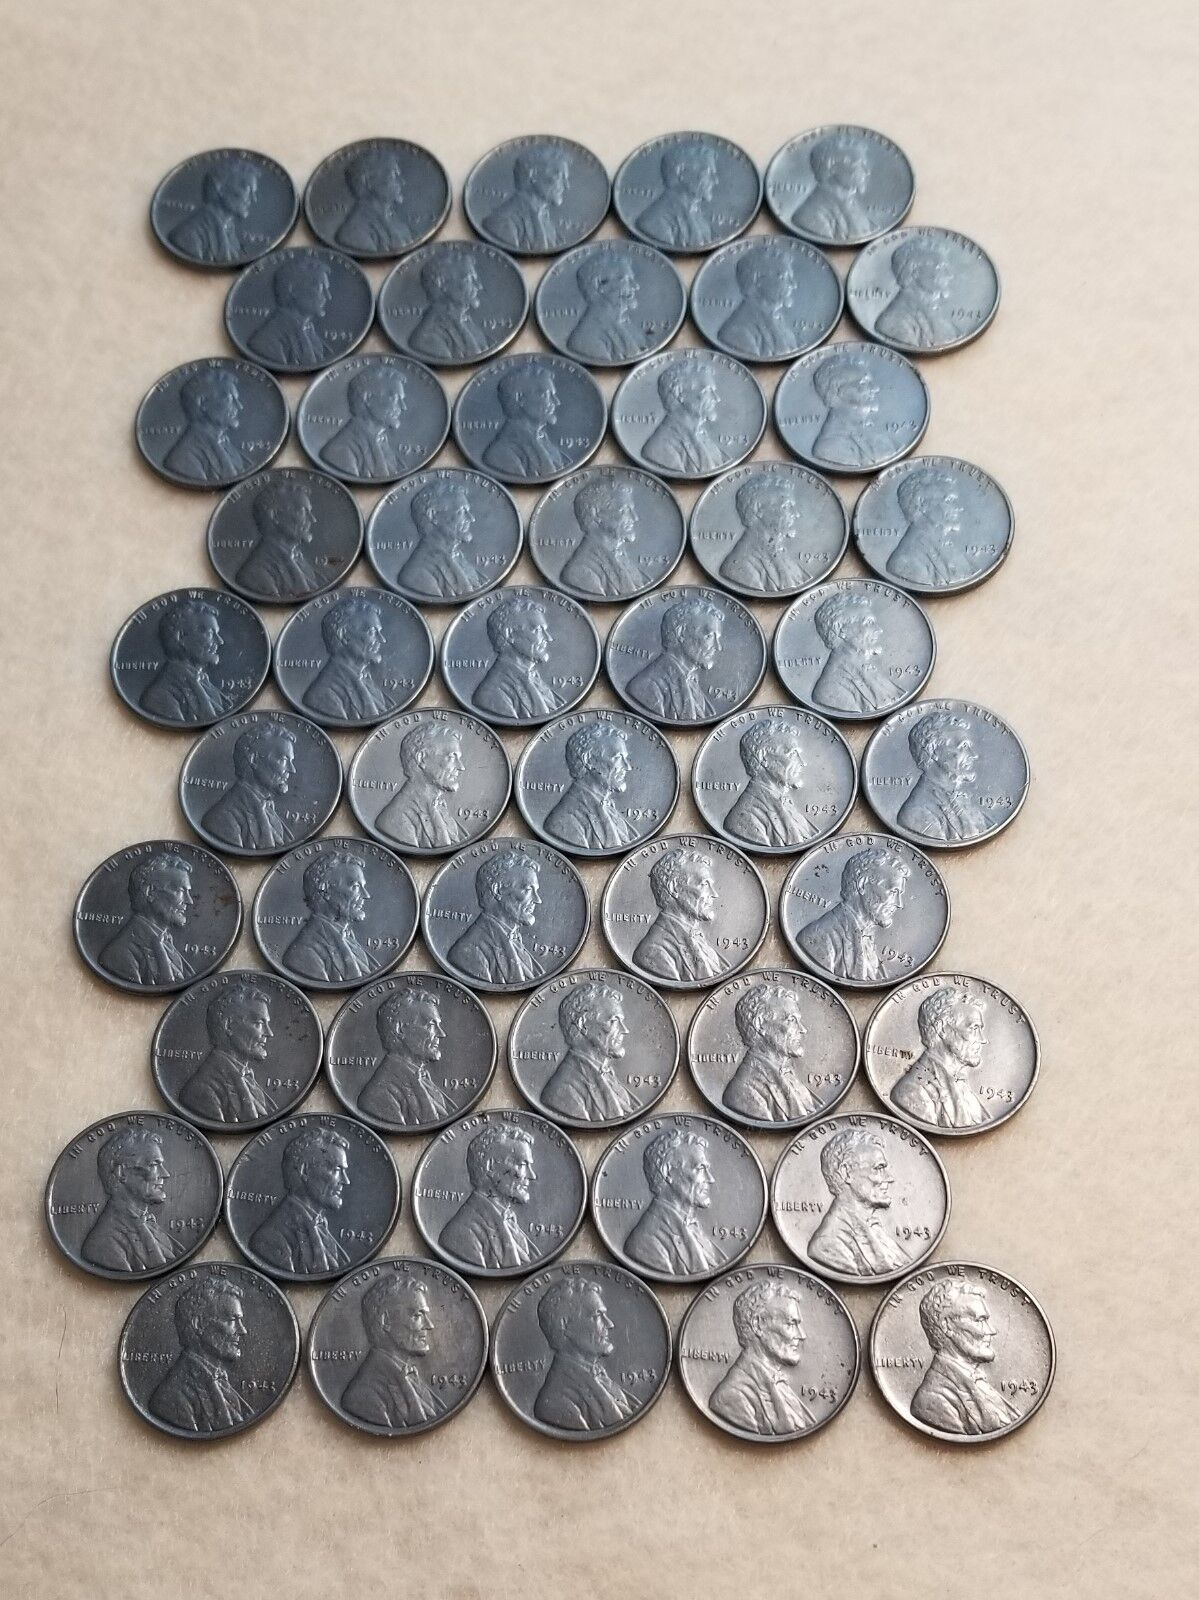 1943 STEEL WHEAT LINCOLN PENNIES ROLL - 50 CENTS – ACTUAL COIN LOT SHOWIN PHOTOS